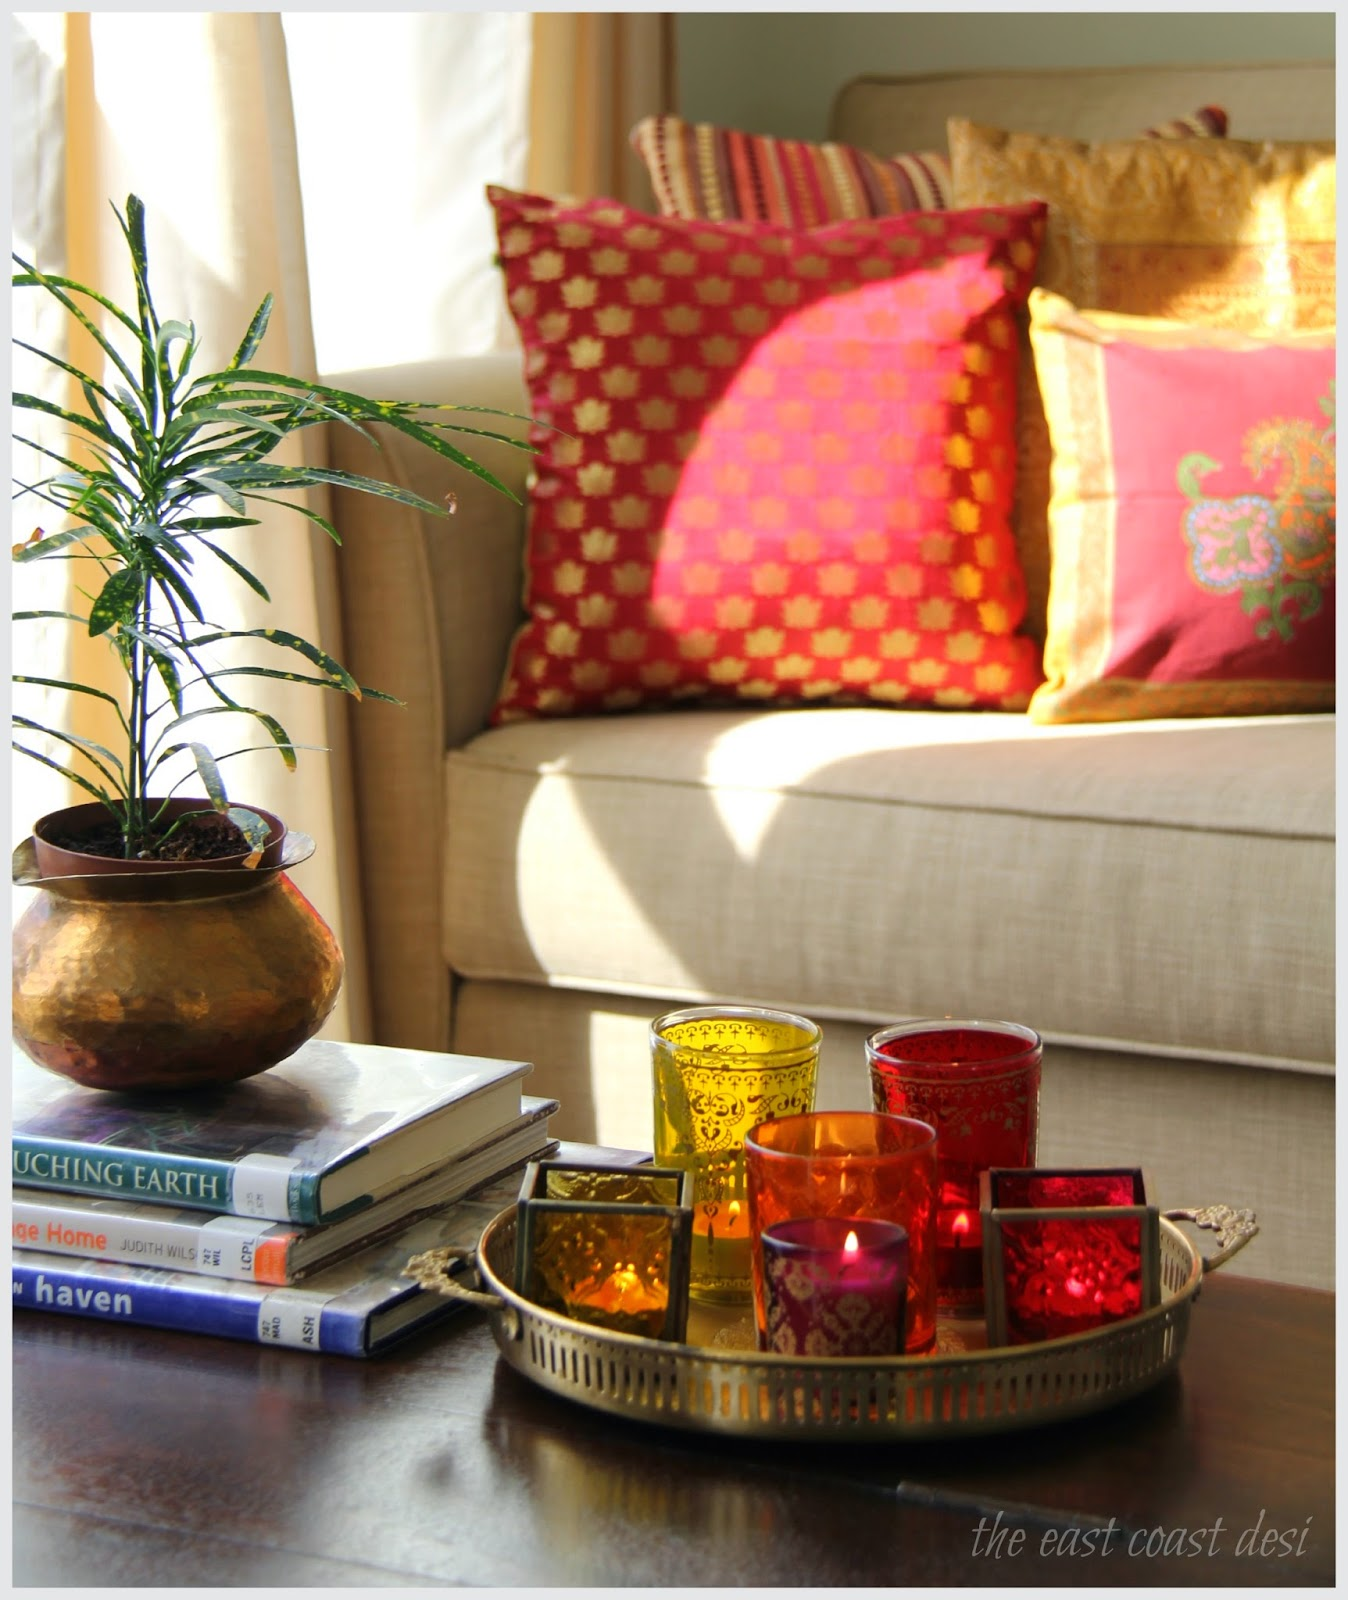 Home Design Ideas India: The East Coast Desi: Glitzing It Up For Diwali (Festive